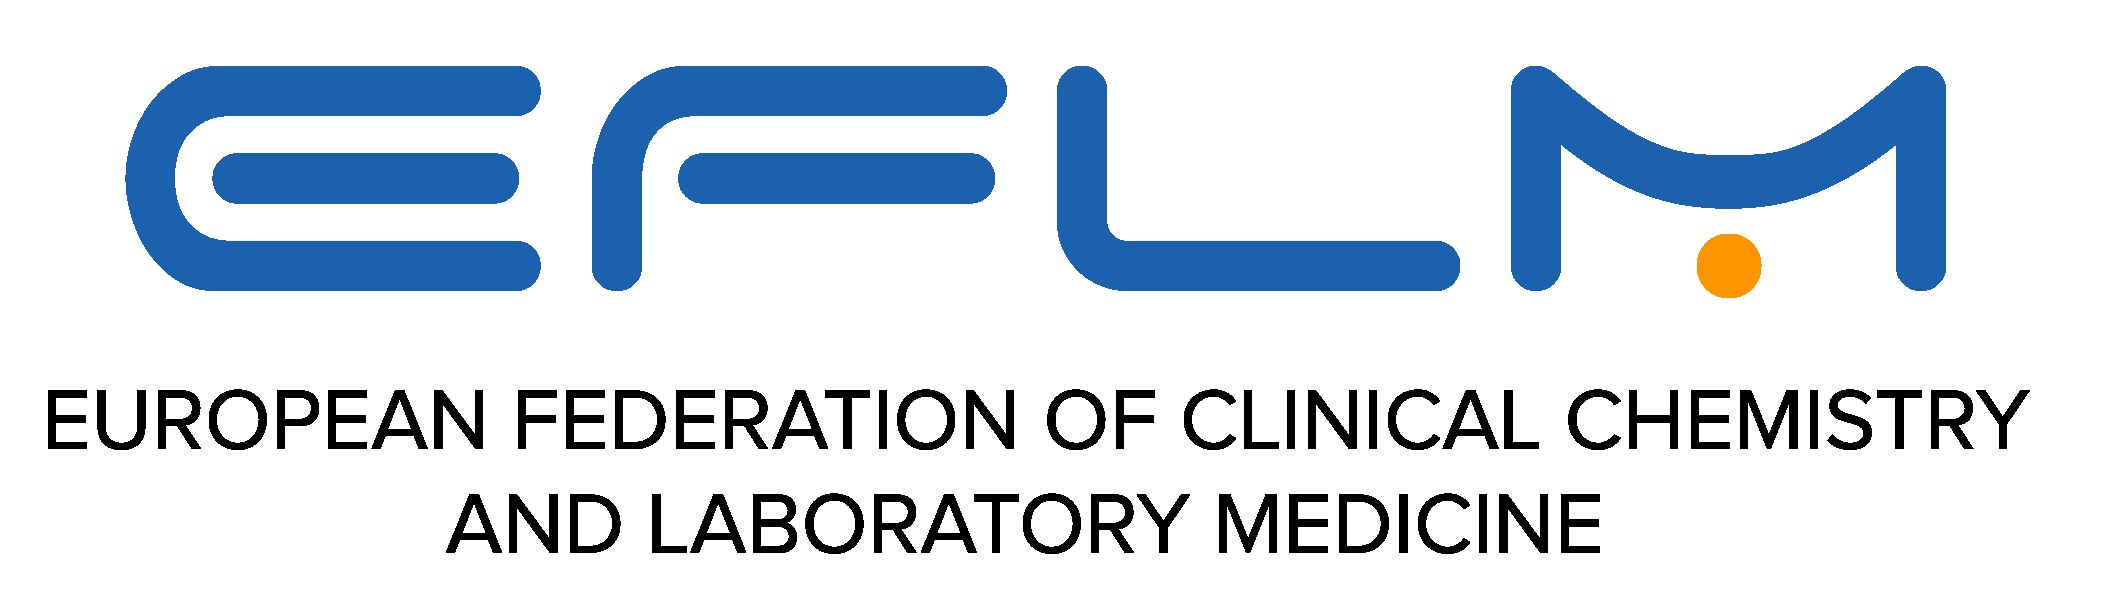 EFLM (European Federation of Clinical Chemistry and Laboratory Medicine)